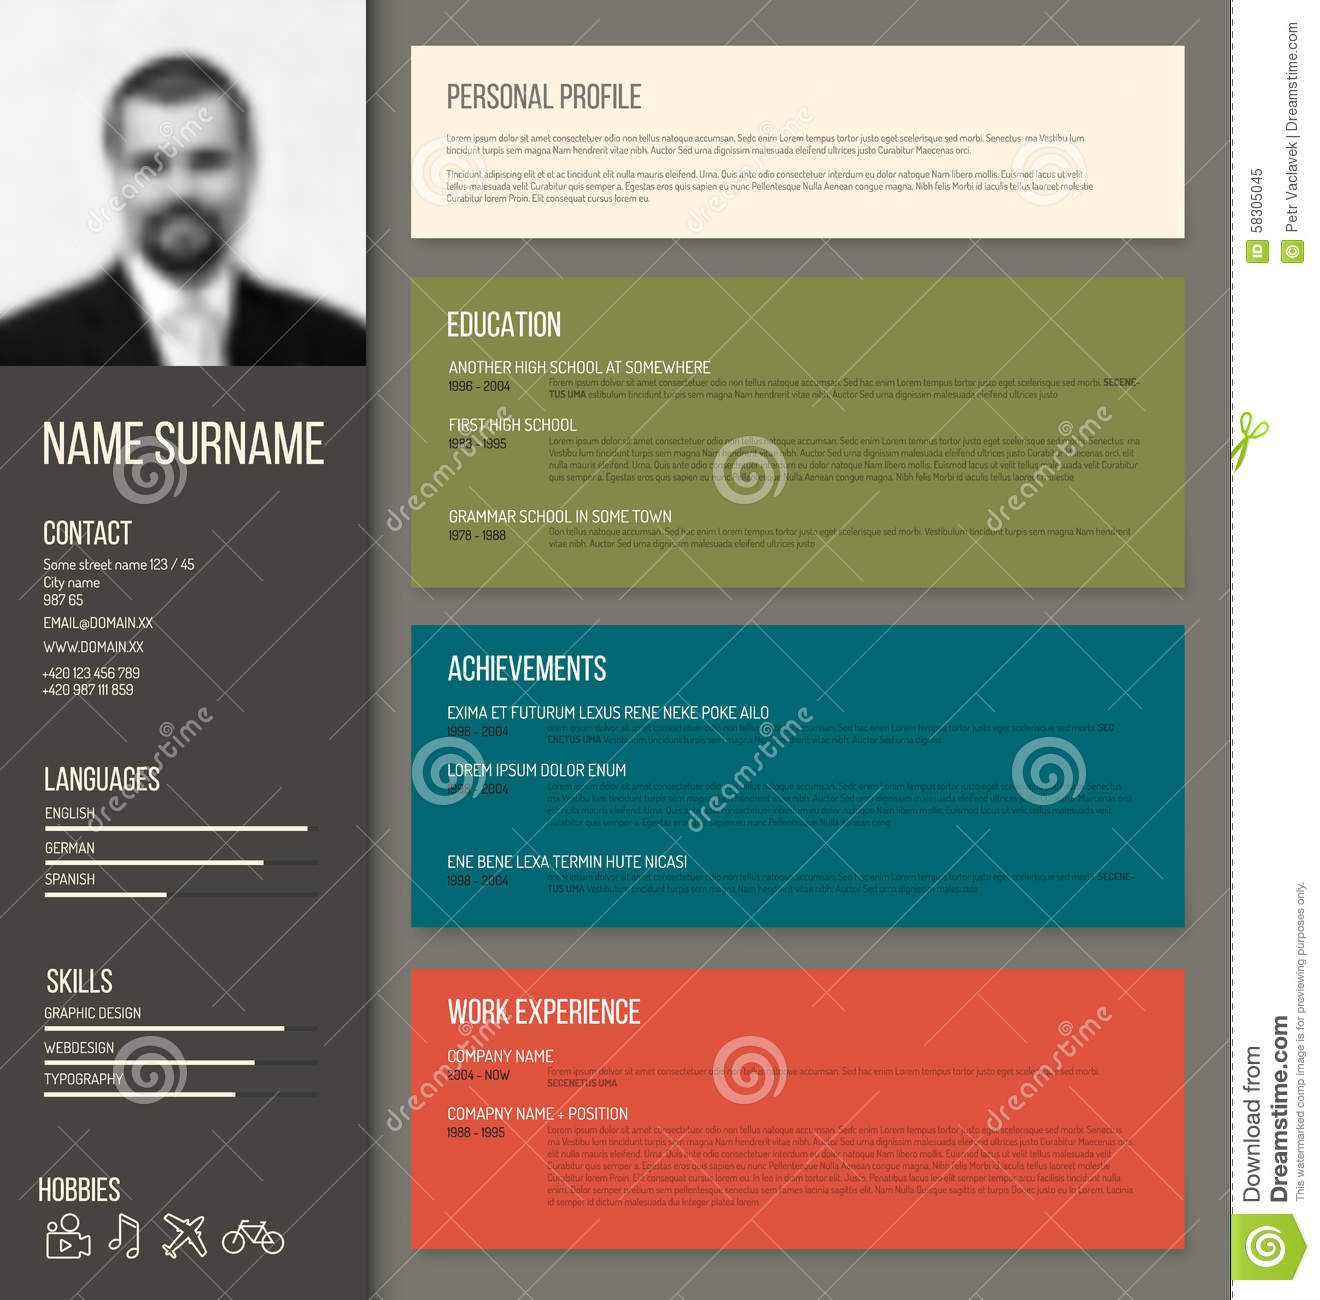 personal profile design templates - minimalistic cv resume template stock vector image